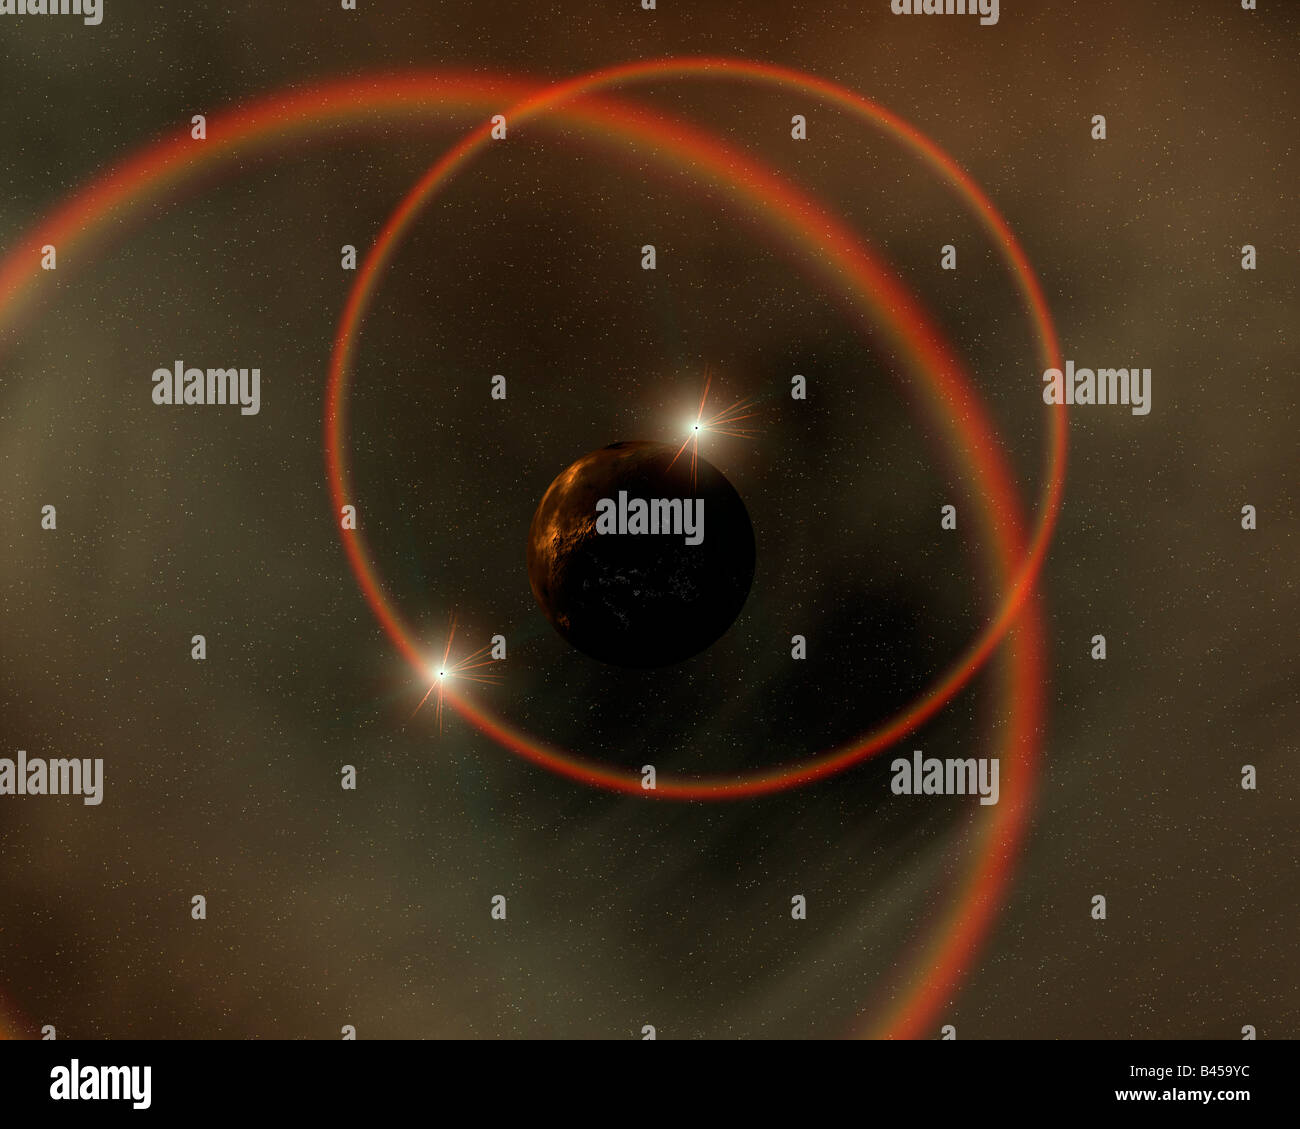 Binary Star System - Stock Image